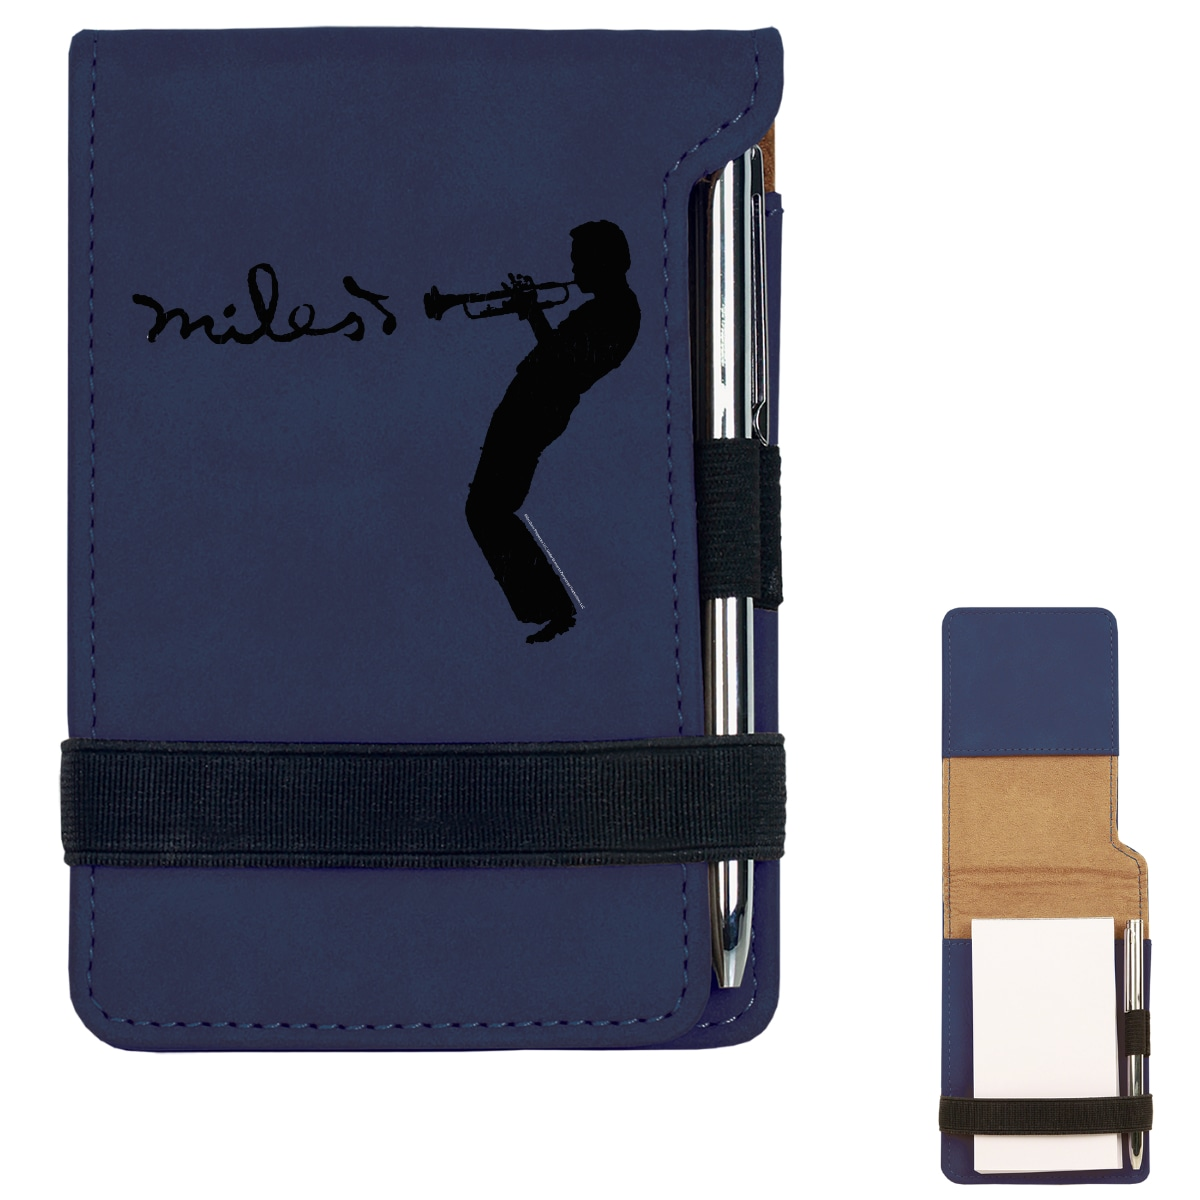 Blue Laser Engraved Silhouette Notepad w/Pen